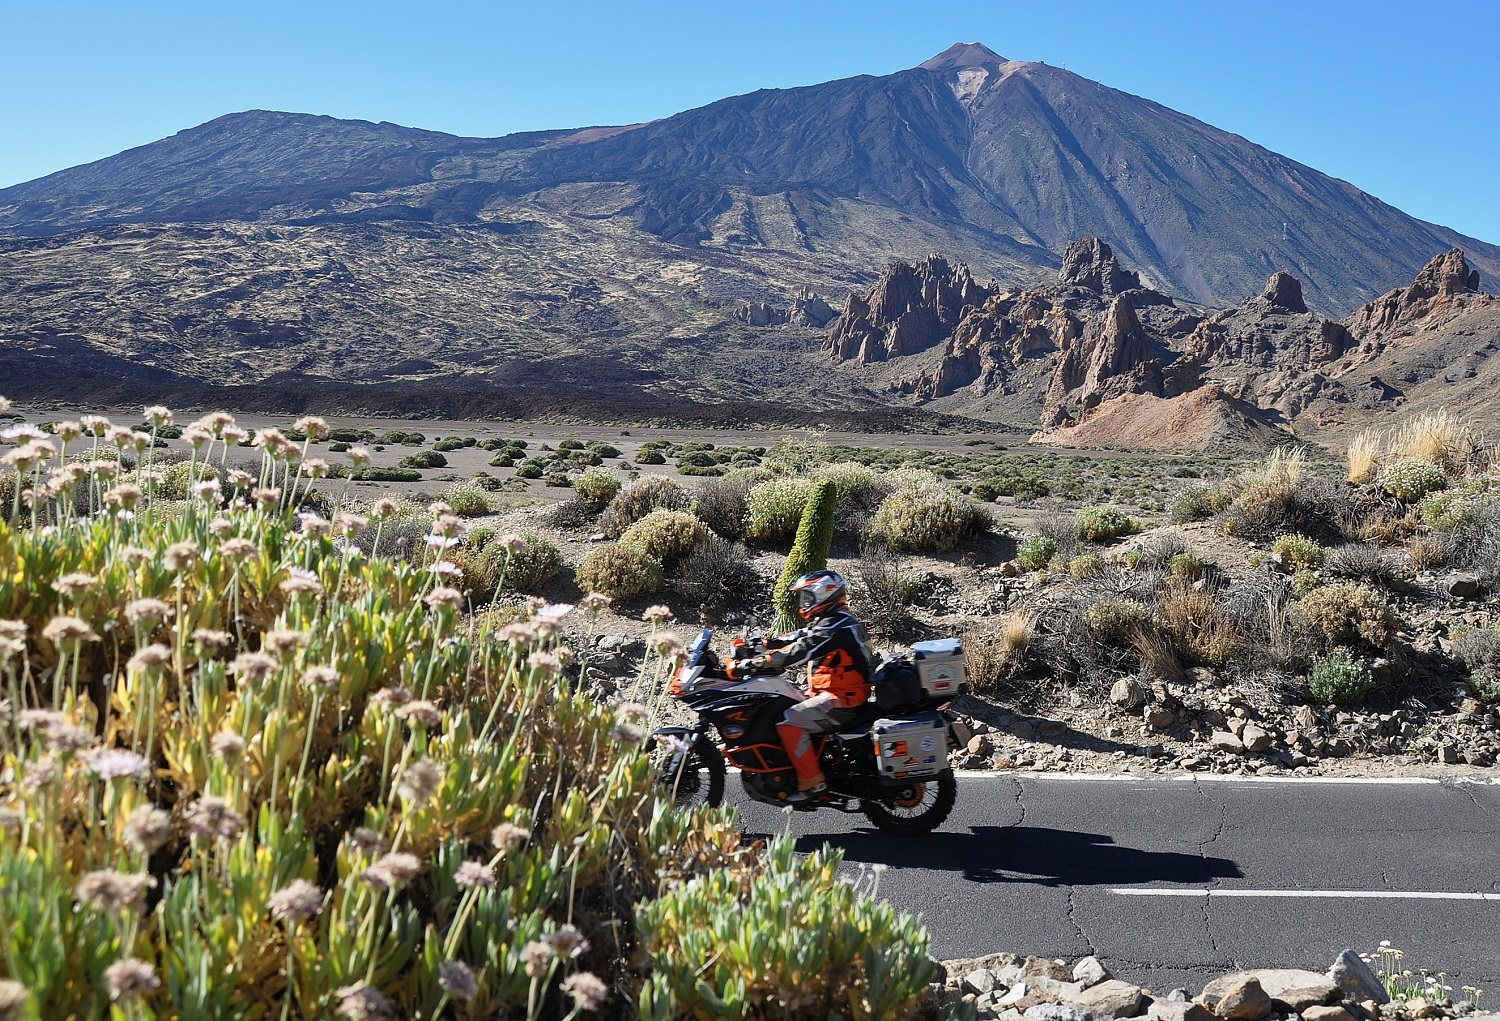 Nochmals der Vulkan Teide, andere Perspektive   The Teide volcano from another perspective